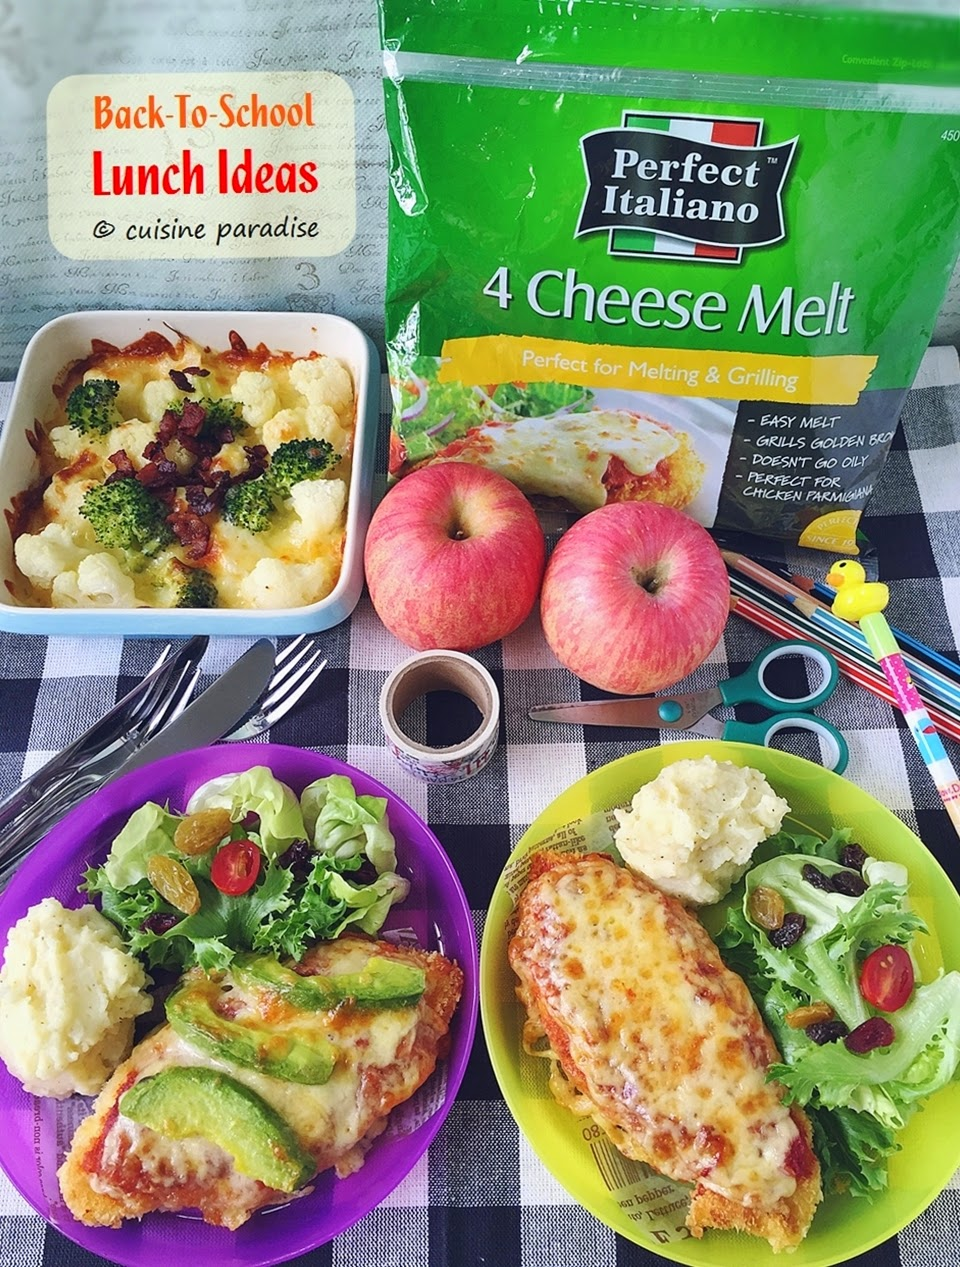 ... ] Back To School Lunch Ideas With Perfect Italiano 4 Cheese Melt